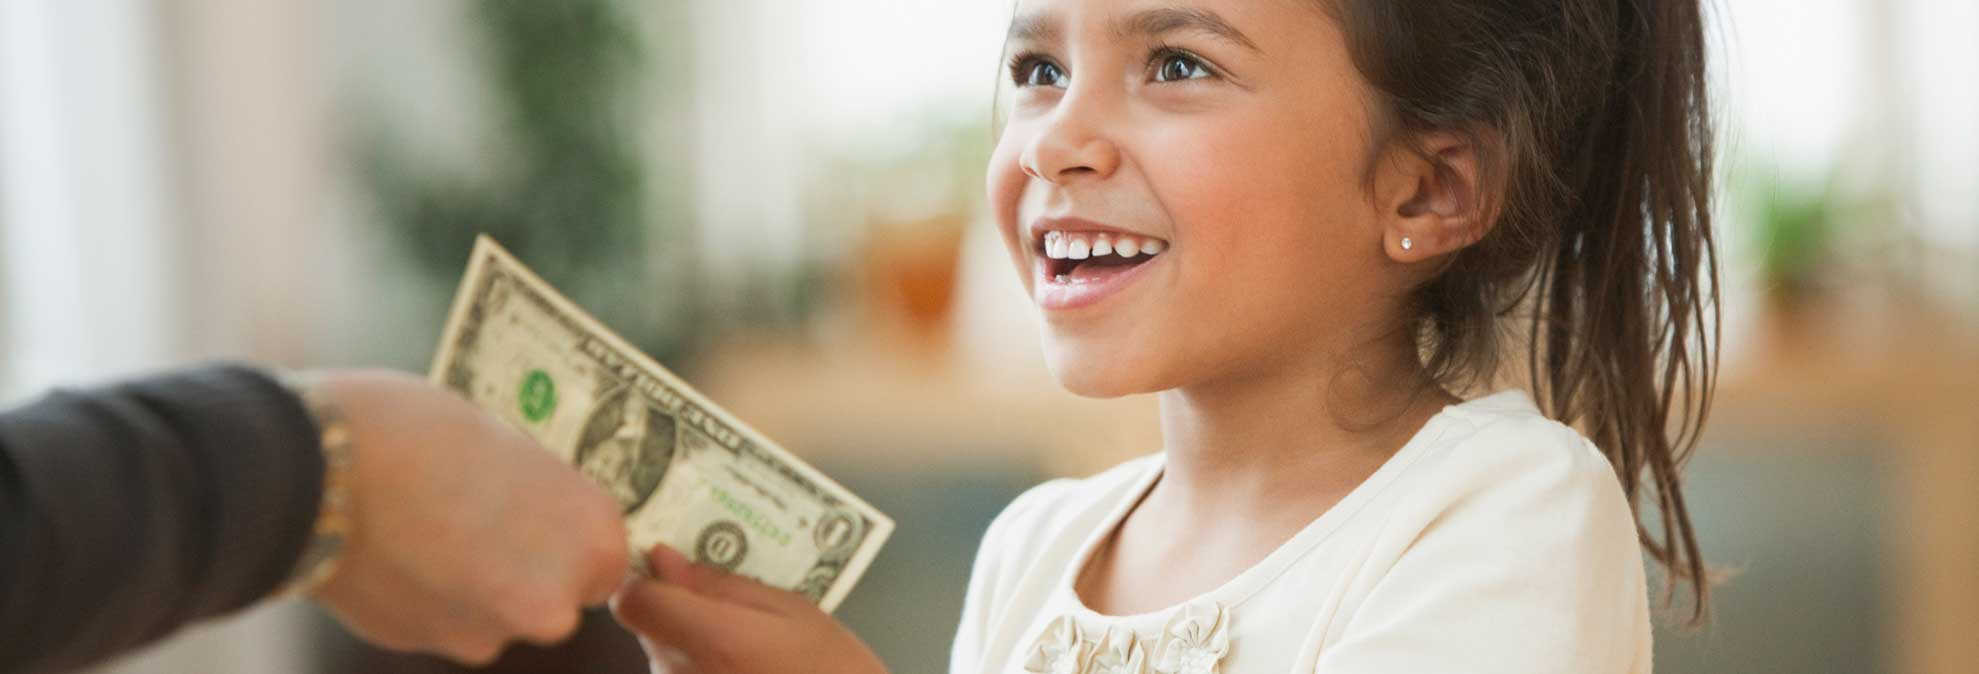 The Right Way To Give Your Kid An Allowance Consumer Reports